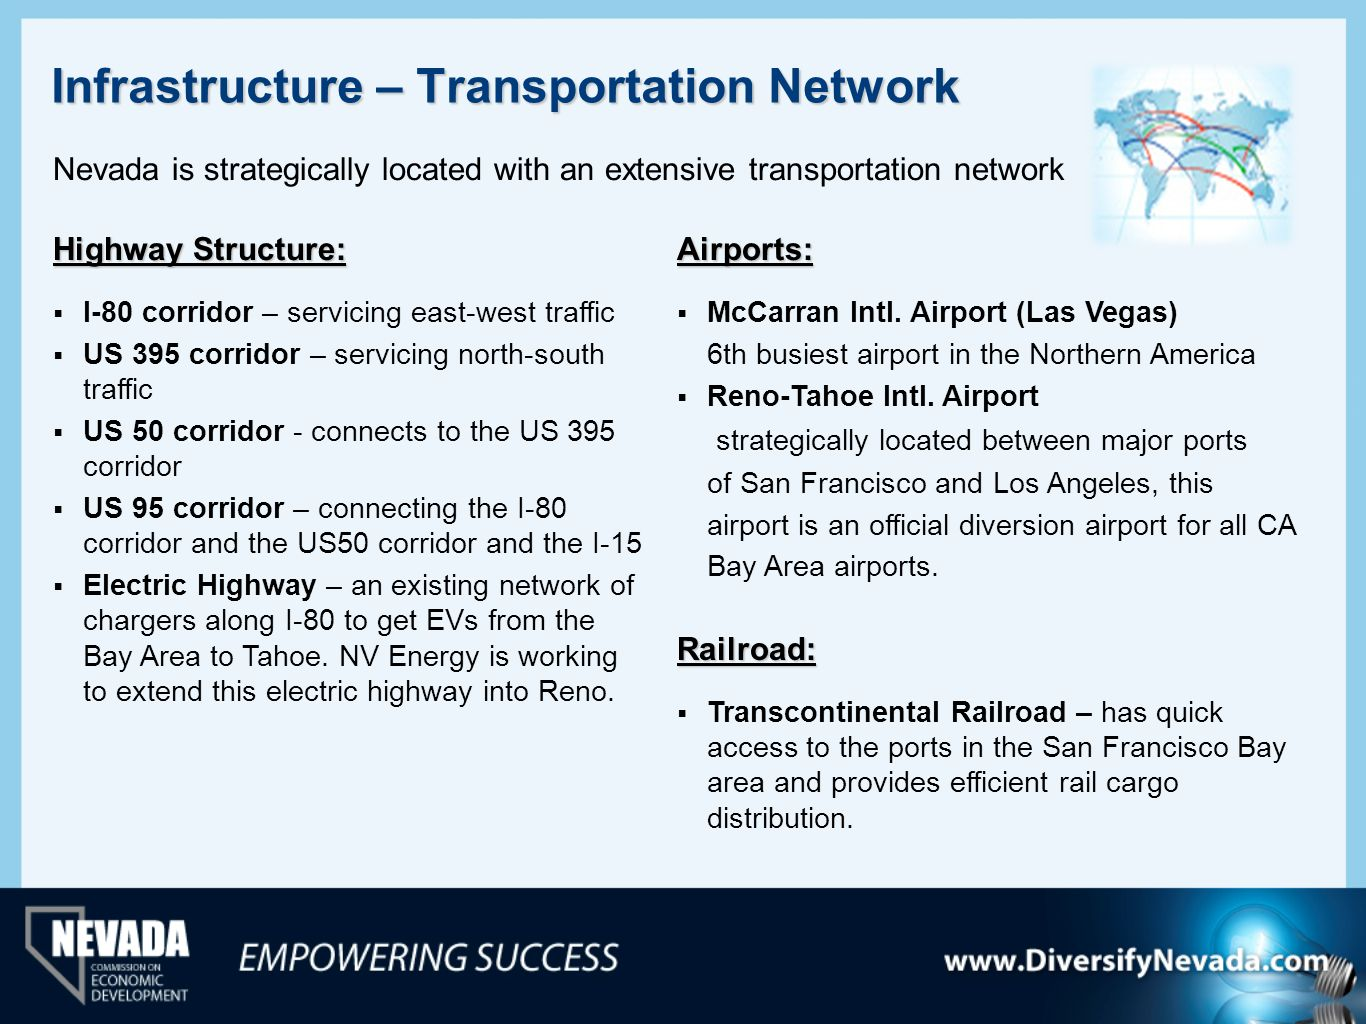 Infrastructure – Transportation Network